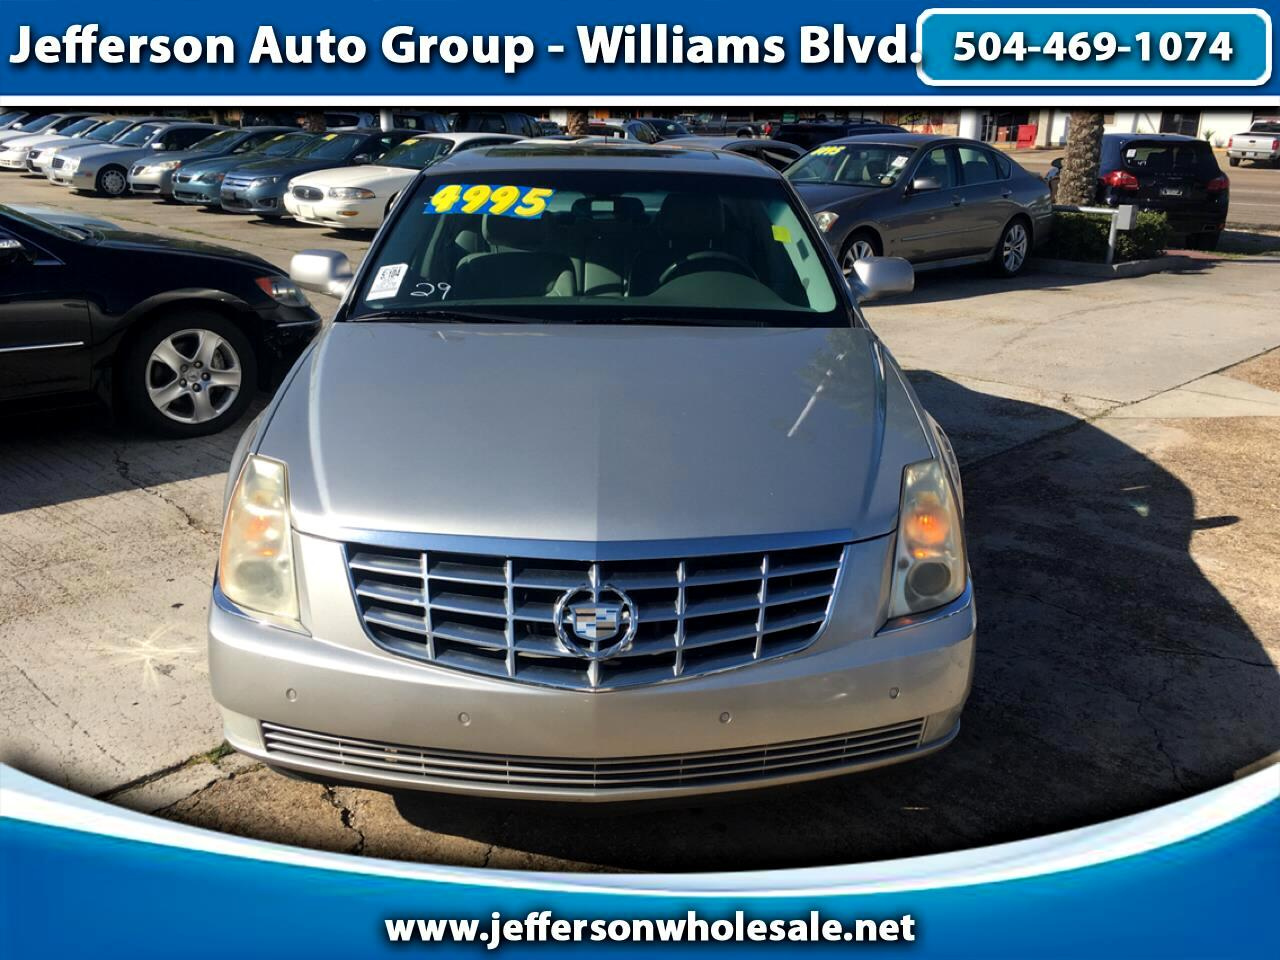 2007 Cadillac DTS 4dr Sdn Luxury I